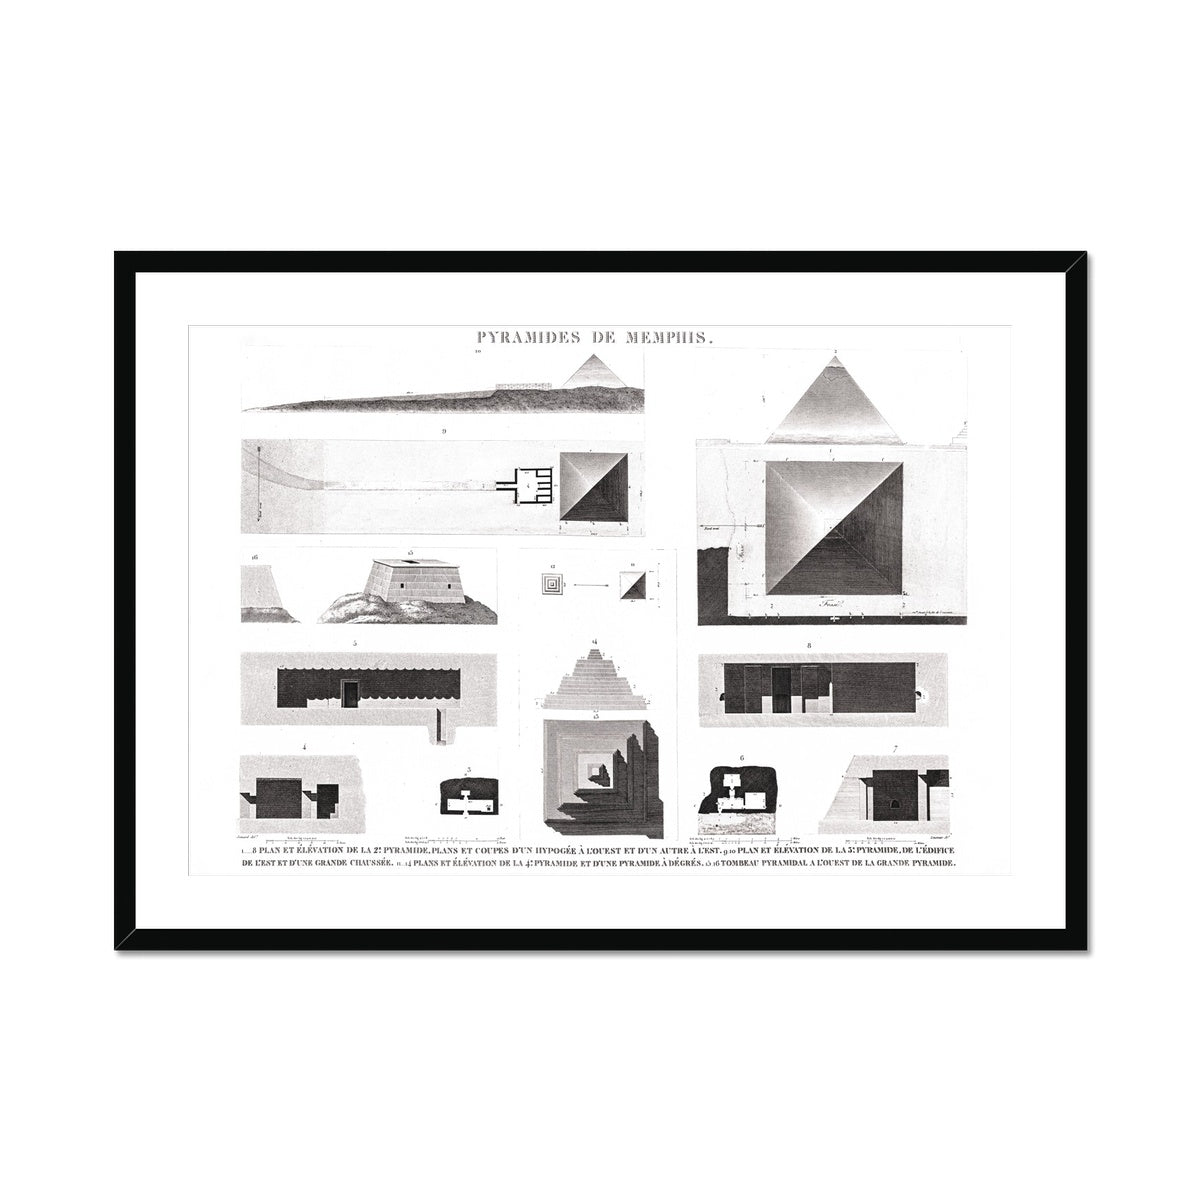 Details of the Pyramids of Giza - Memphis Egypt -  Framed & Mounted Print